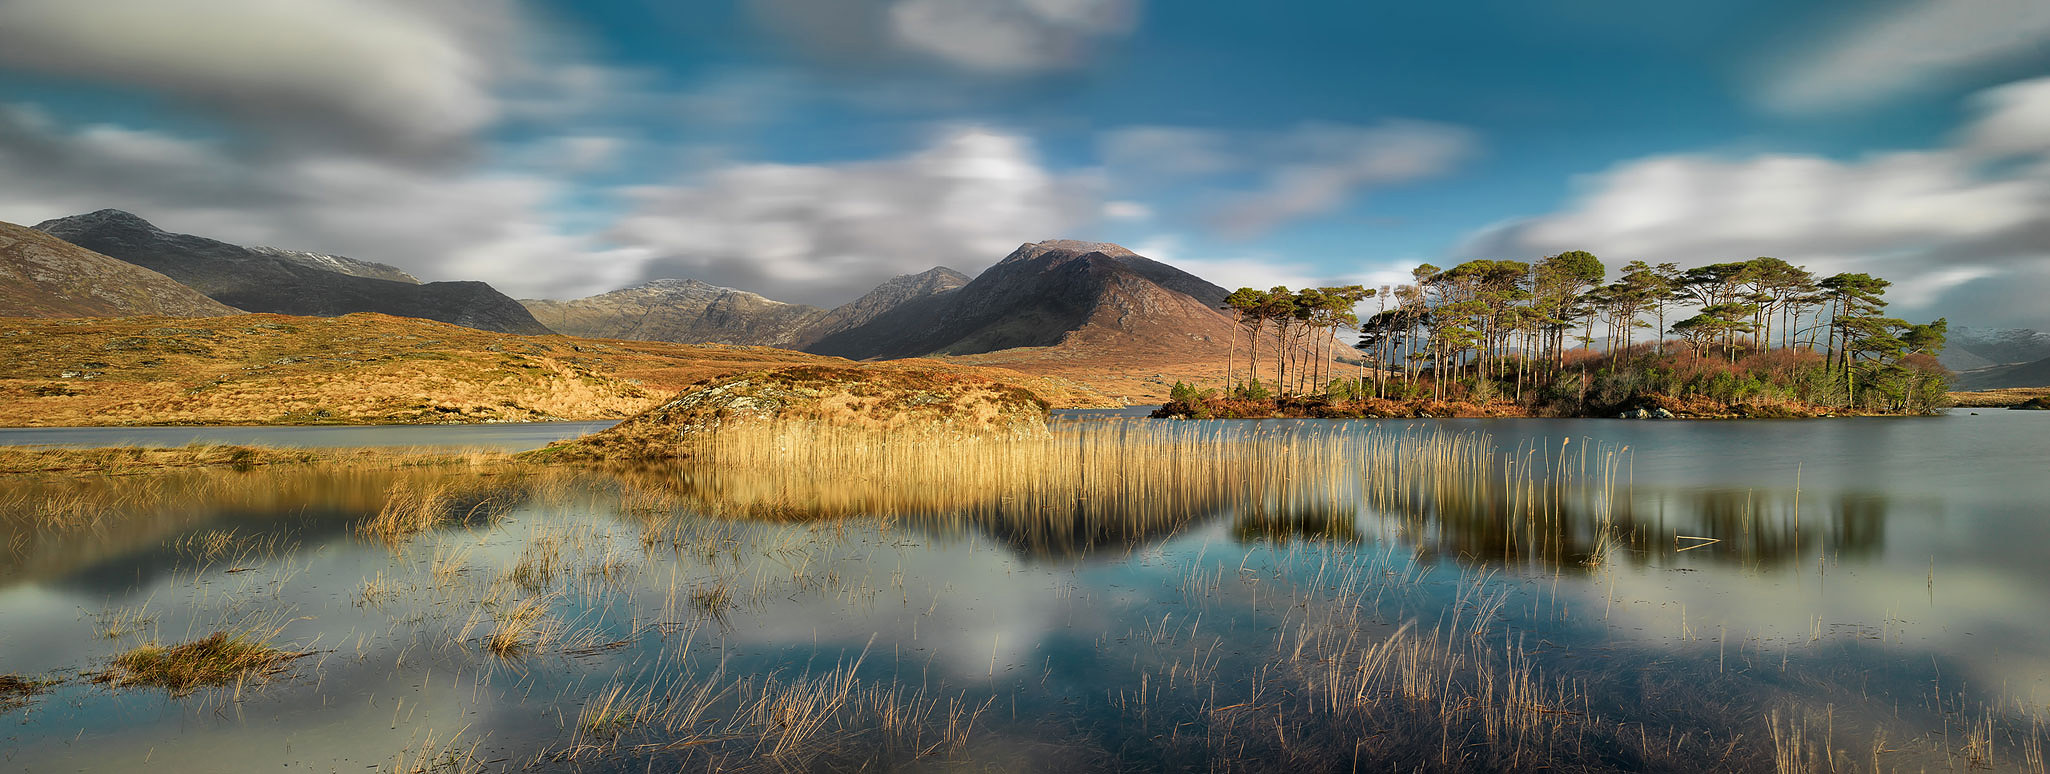 derryclare lough connemara landscape photo galway